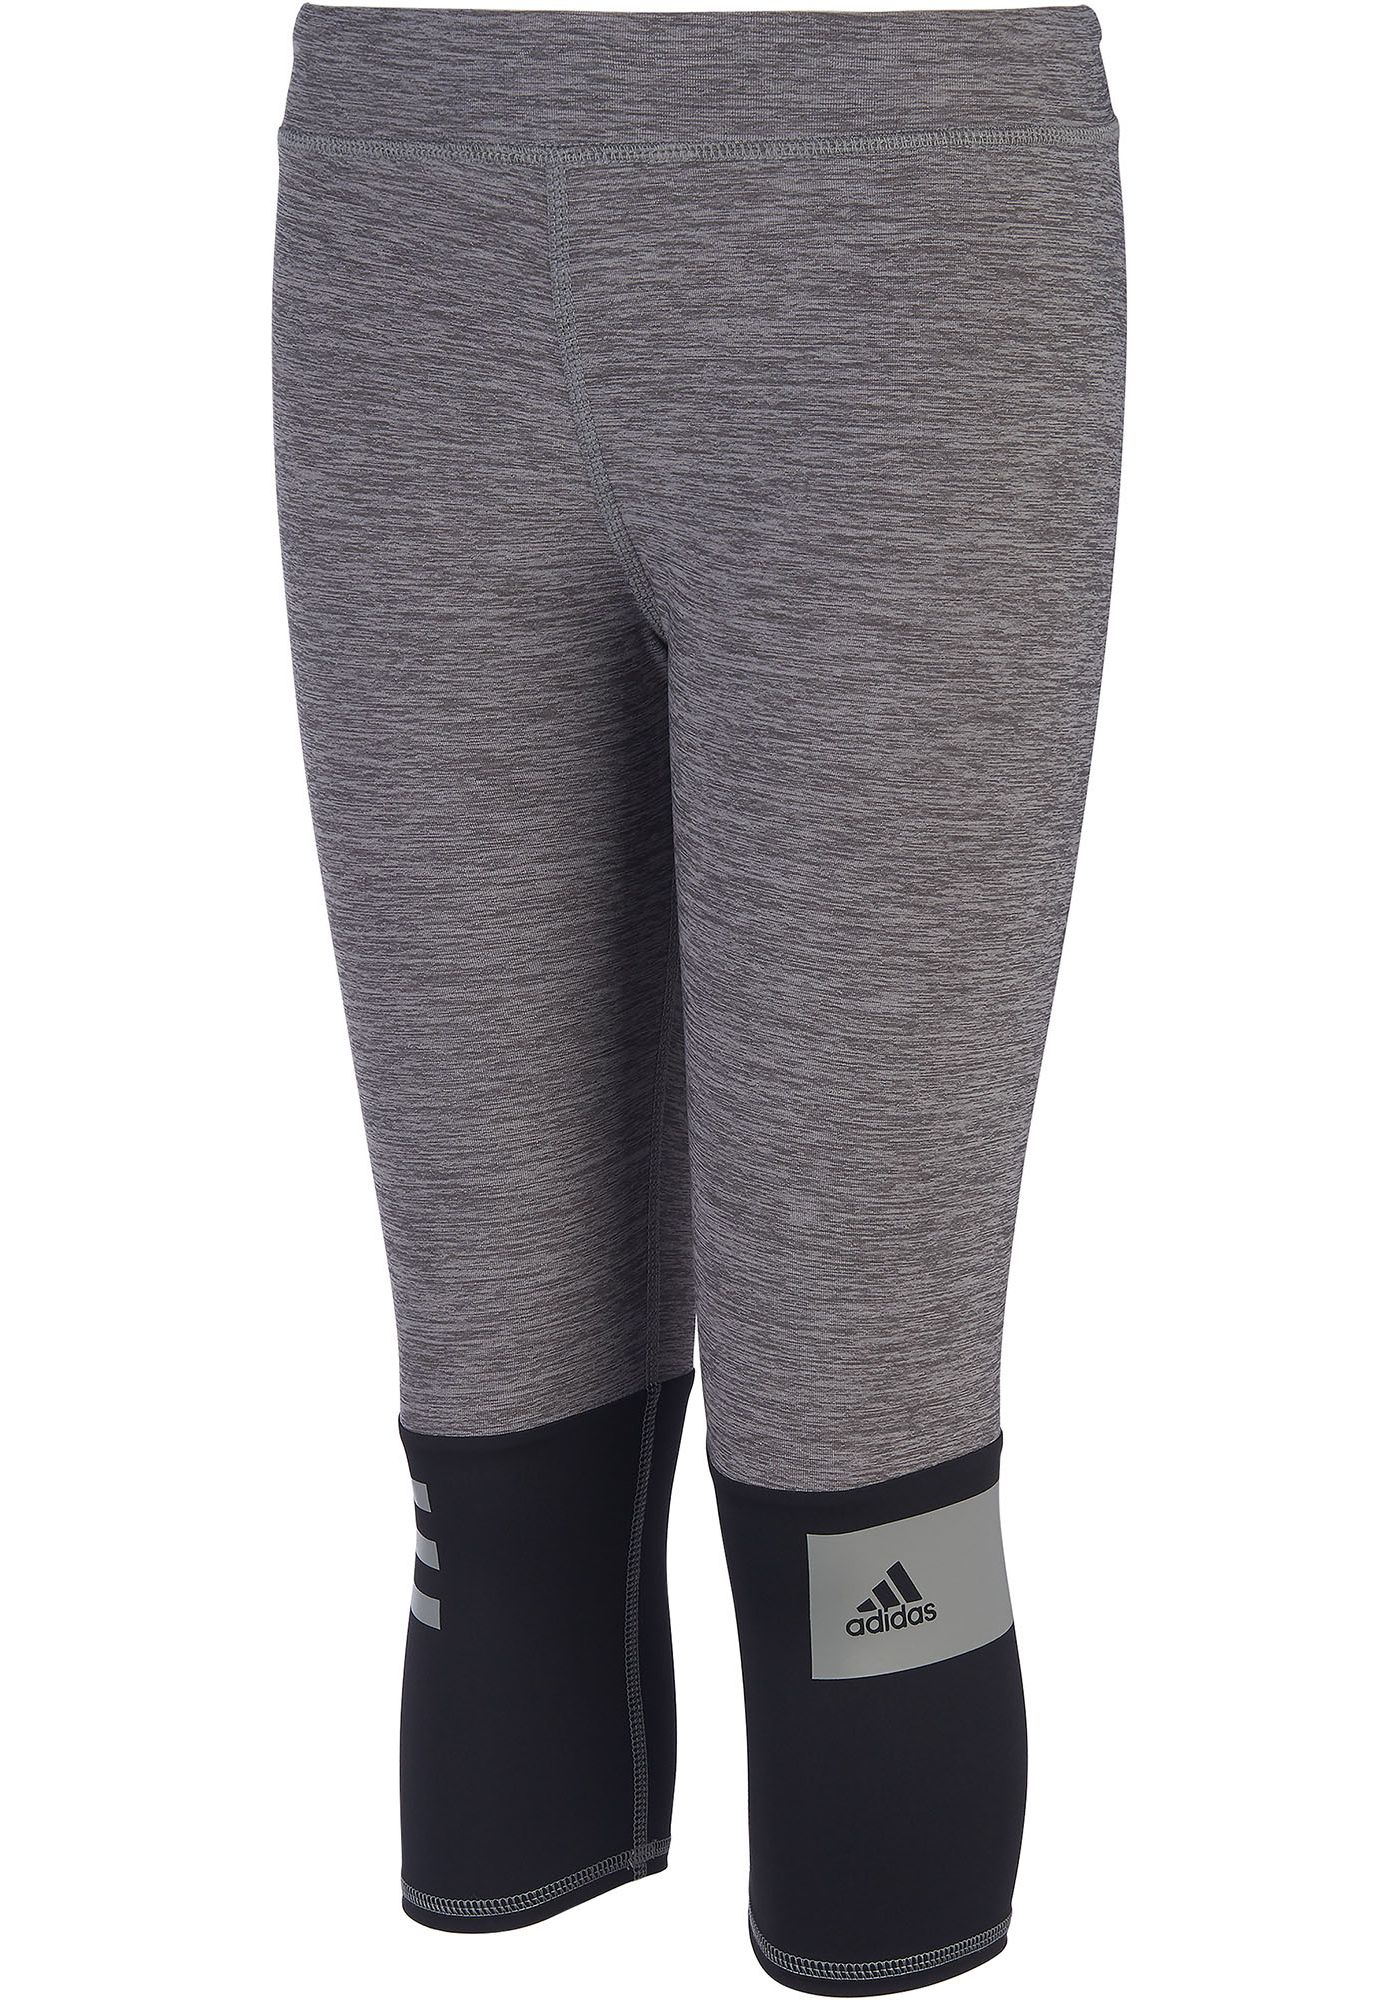 adidas Girls' Heather Capris